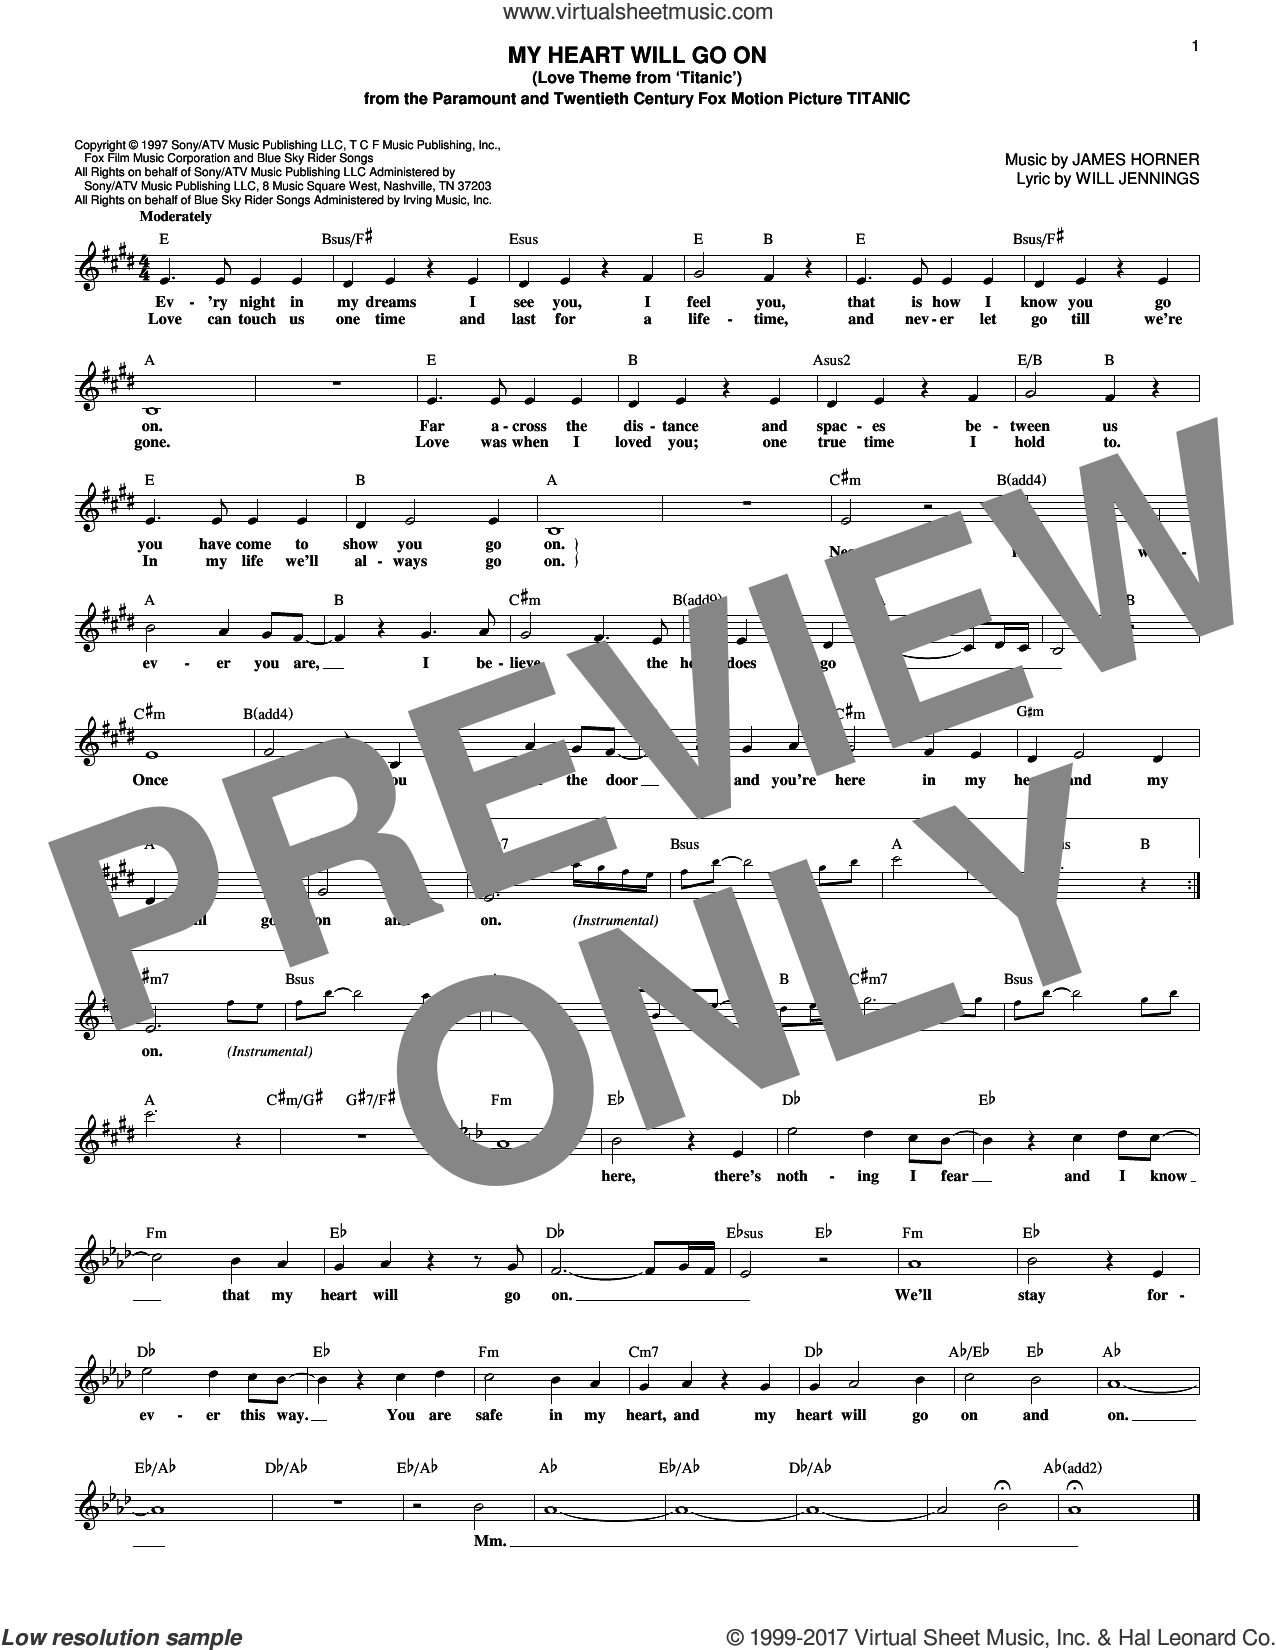 My Heart Will Go On (Love Theme From 'Titanic') sheet music for voice and other instruments (fake book) by Celine Dion, Deja Vu, Deja Vu, Kenny G, James Horner and Will Jennings, intermediate skill level